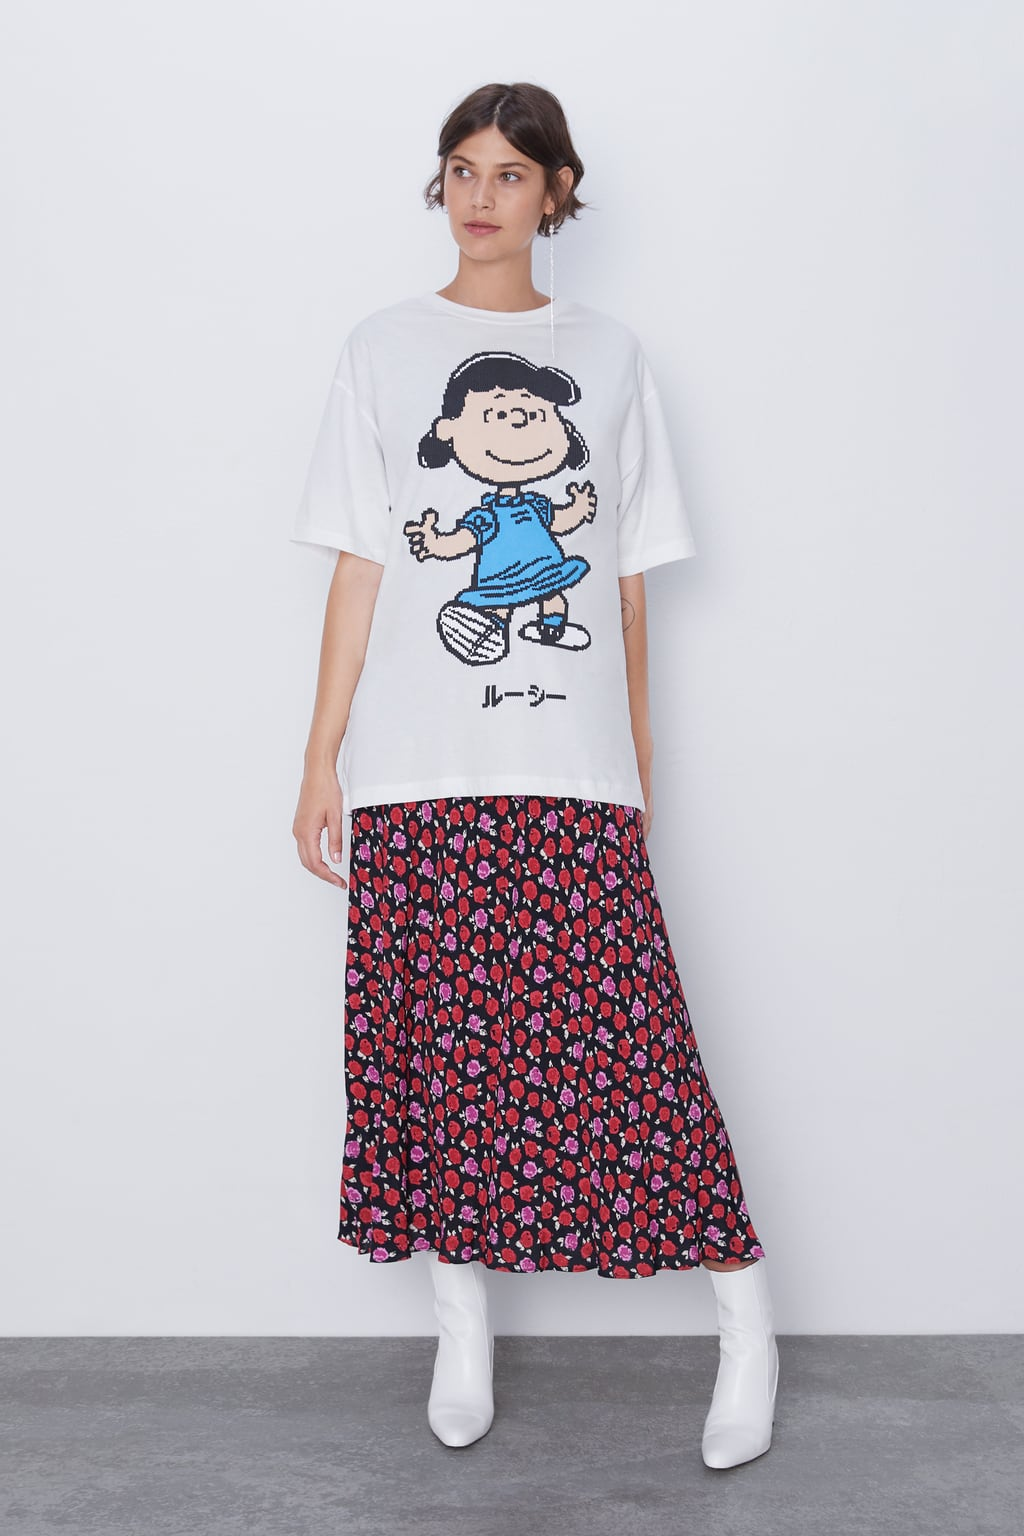 LUCY T-SHIRT SNOOPY ®PEANUTS